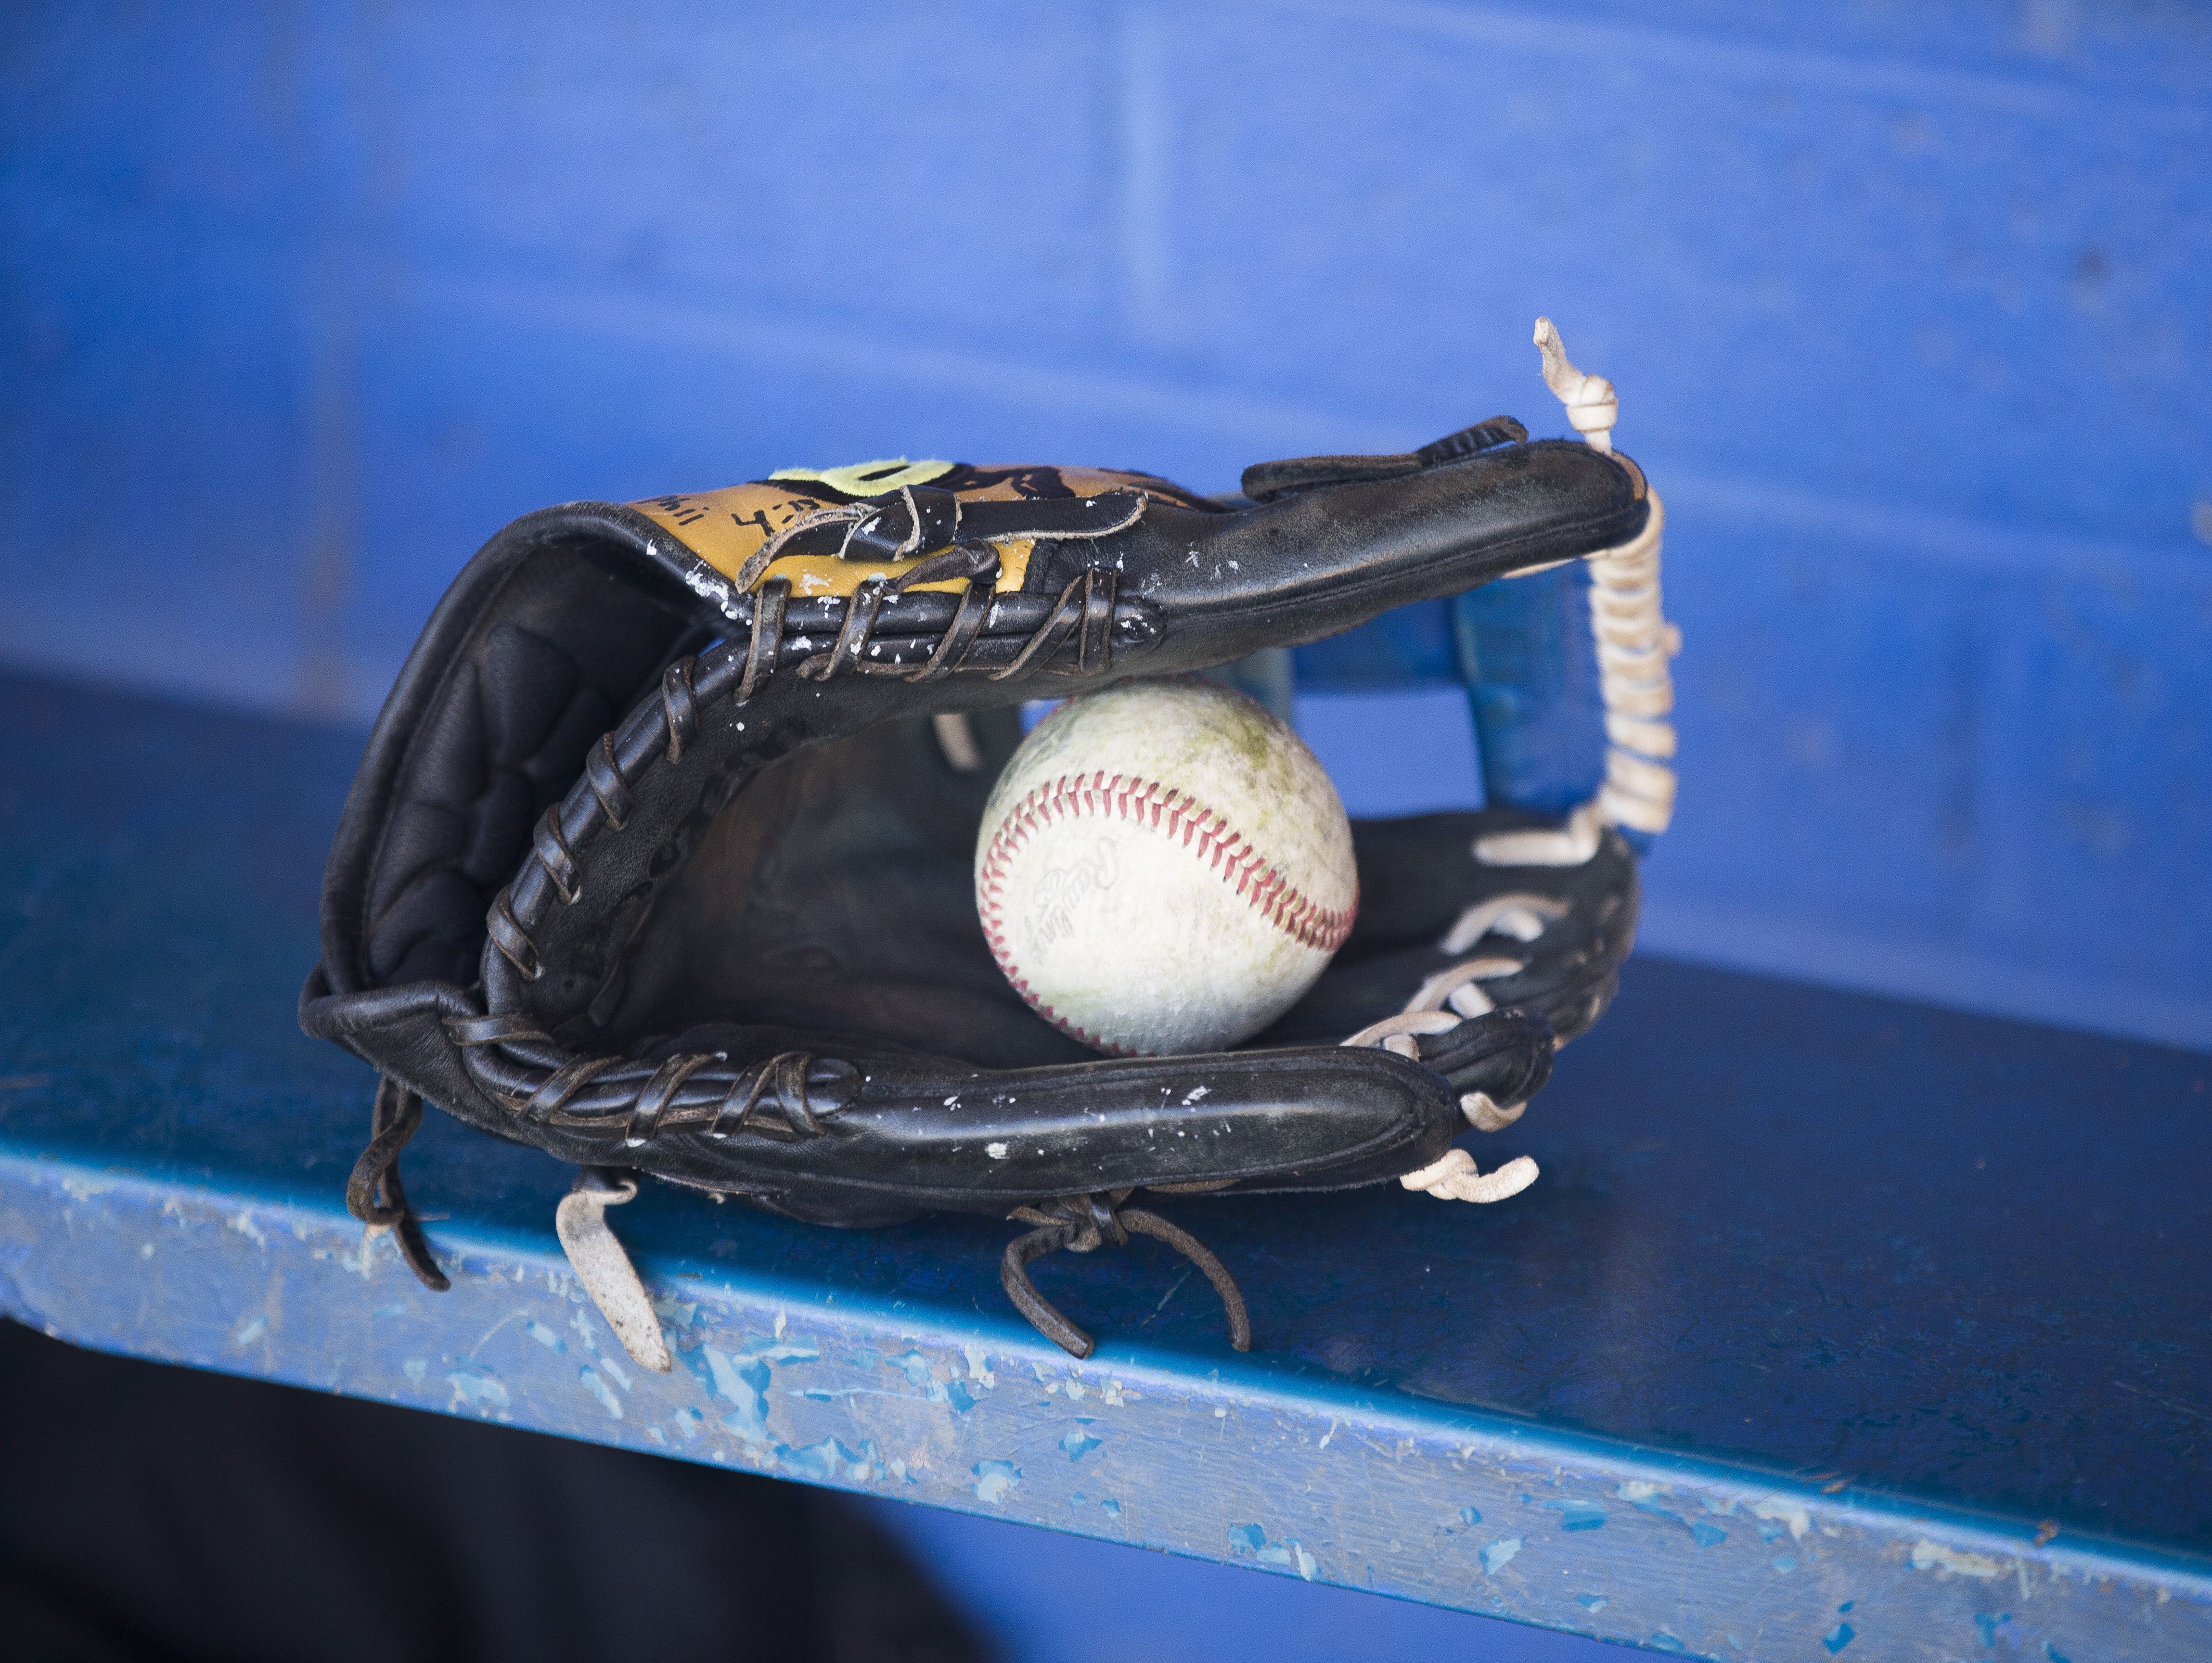 A glove sits on the bench before baseball practice at Prescott High School on March 24, 2017 in Prescott, Ariz.